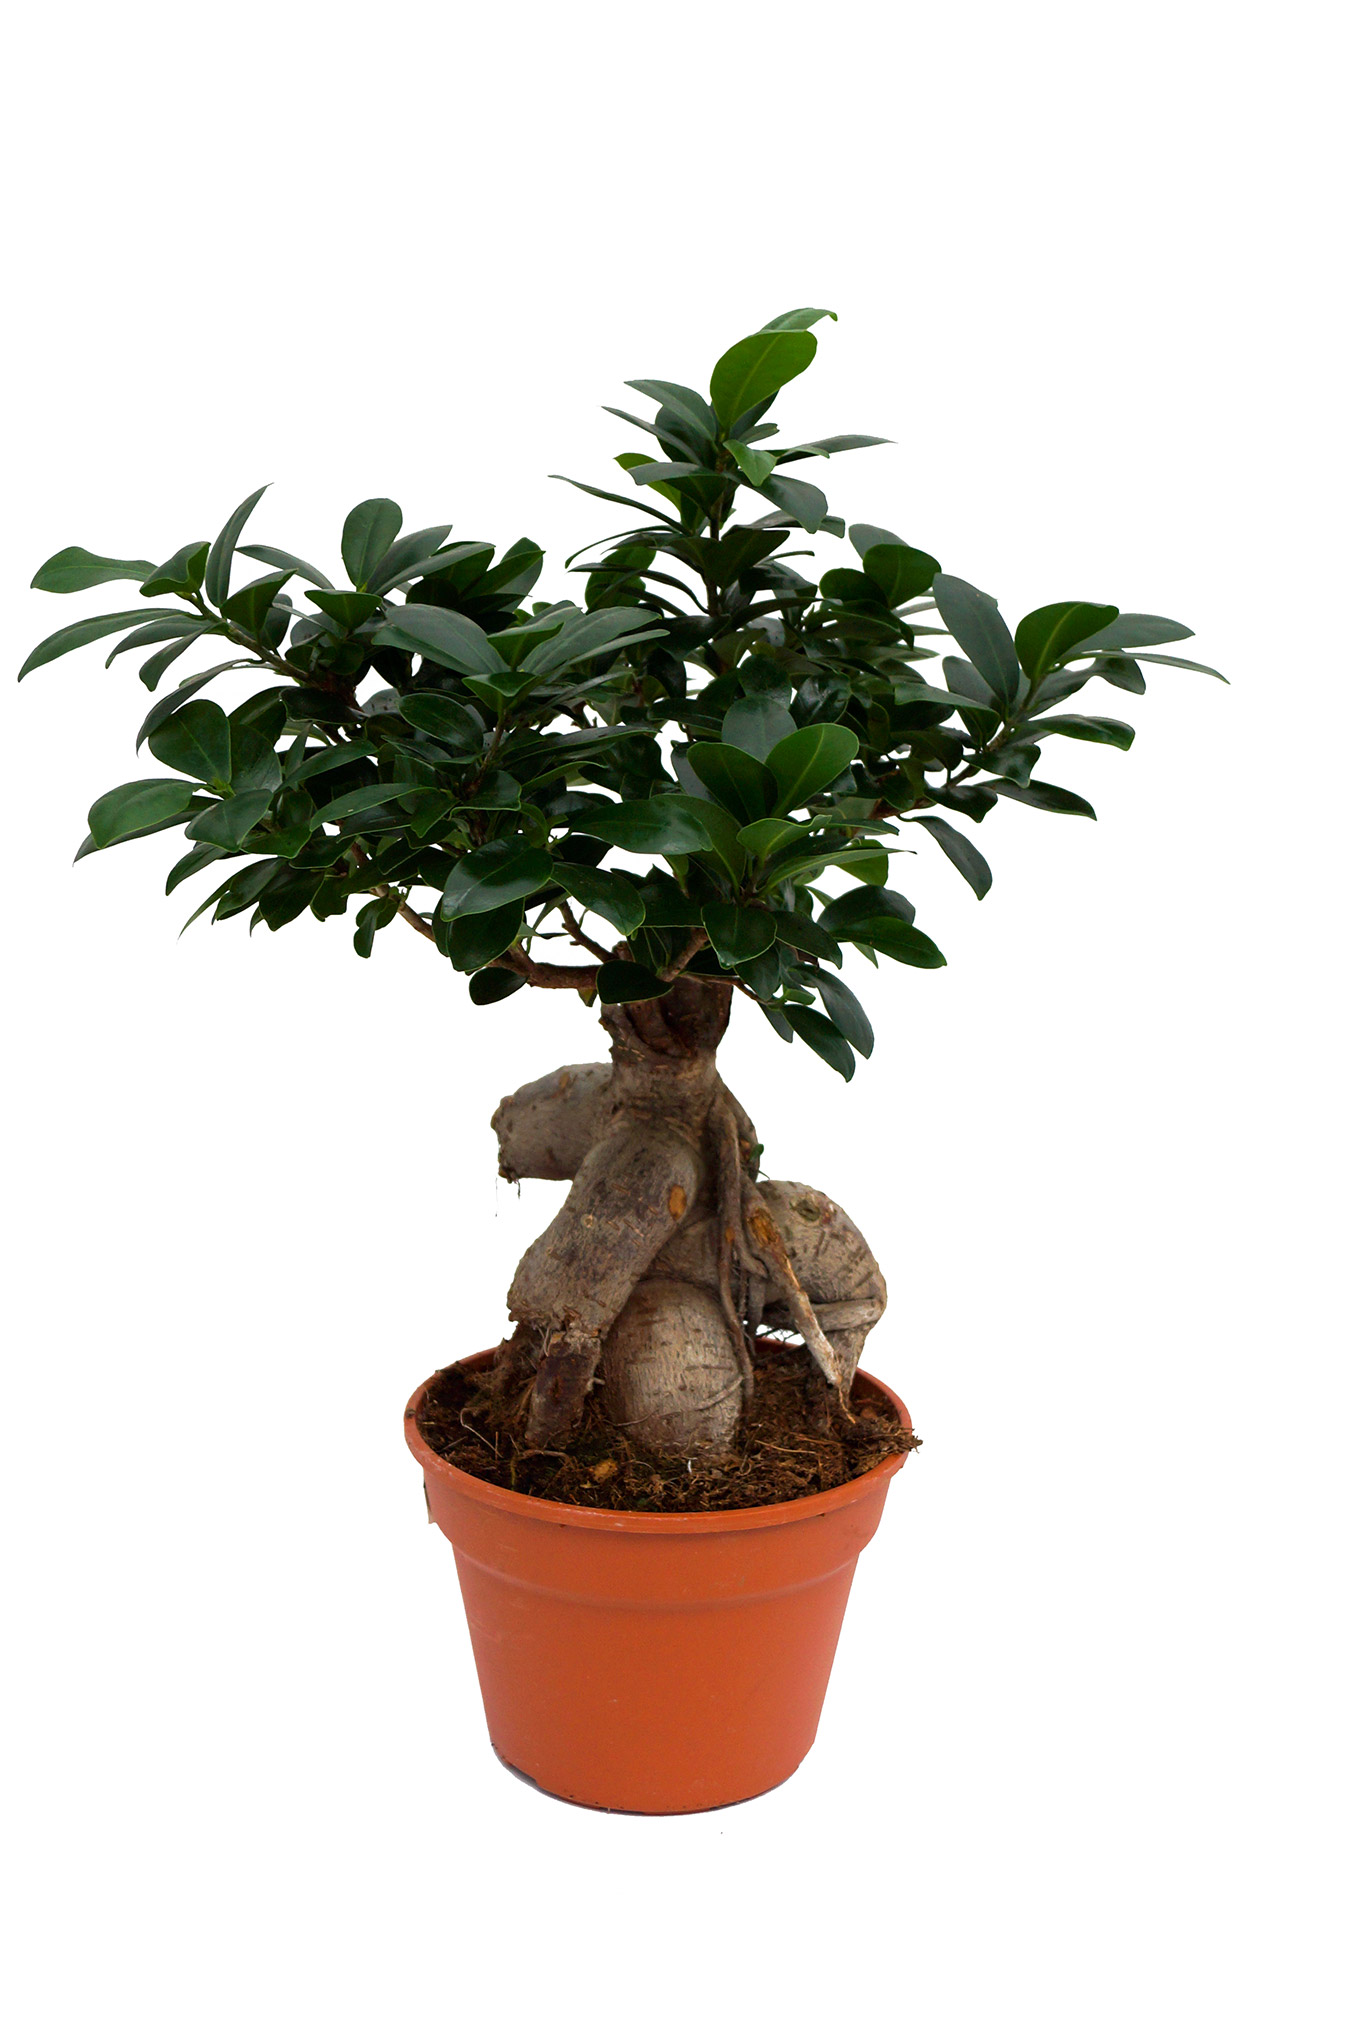 Chinesische Feige - Ficus microcarpa Ginseng